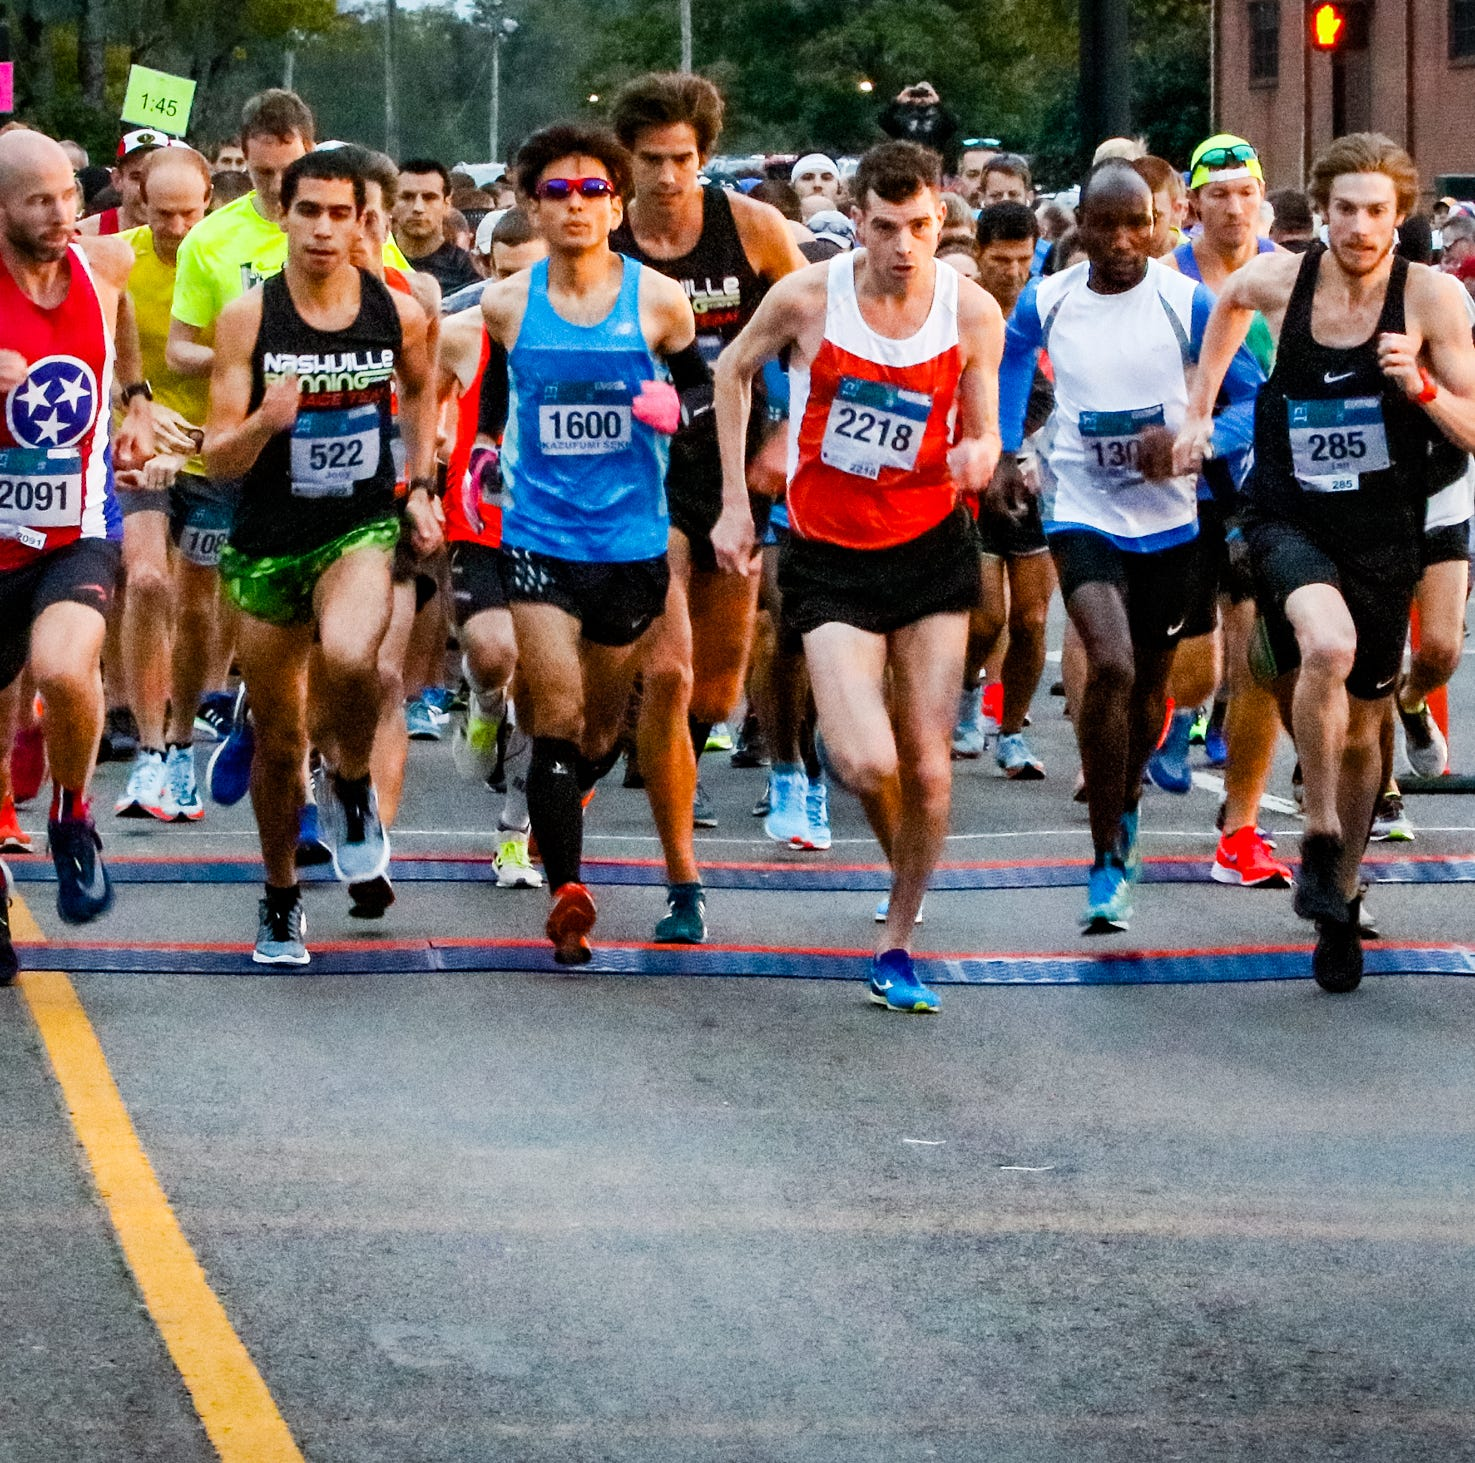 Lace up your shoes: Popular 5Ks, 10Ks, half-marathons in Murfreesboro, Rutherford County